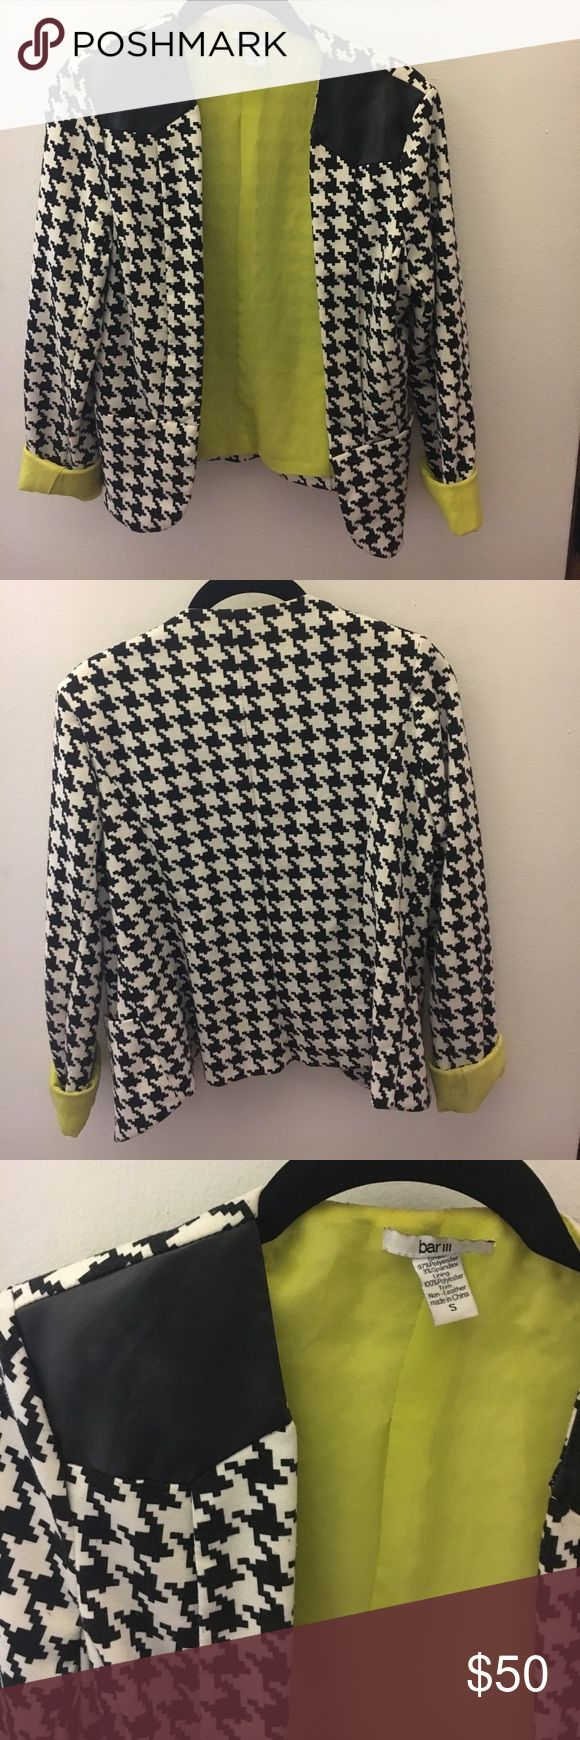 Funky houndstooth blazer Black and white houndstooth blazer with bright green lining. Can fold sleeves to make lining visible or not. Faux leather shoulder pieces, two front pockets, no front closure. Worn only a few times. Bar III Jackets & Coats Blazers